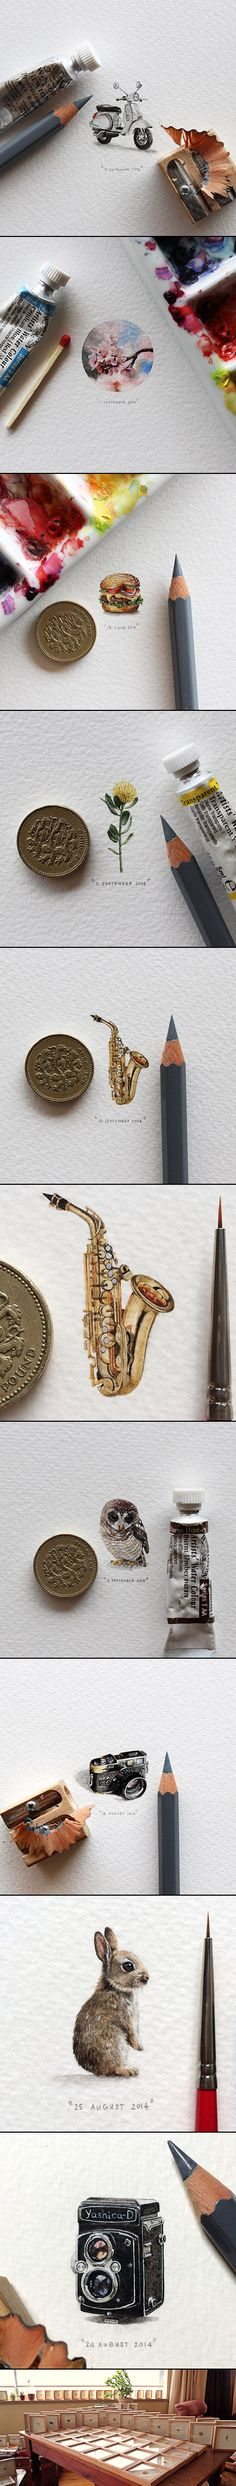 Postcards for Ants is an ongoing painting project by Cape Town artist Lorraine Loots who has been creating a miniature painting every single day since January 1, 2013. The artist works with paint brushes, pencils, and bare eyes to render superbly detailed paintings scarcely larger than a small coin.